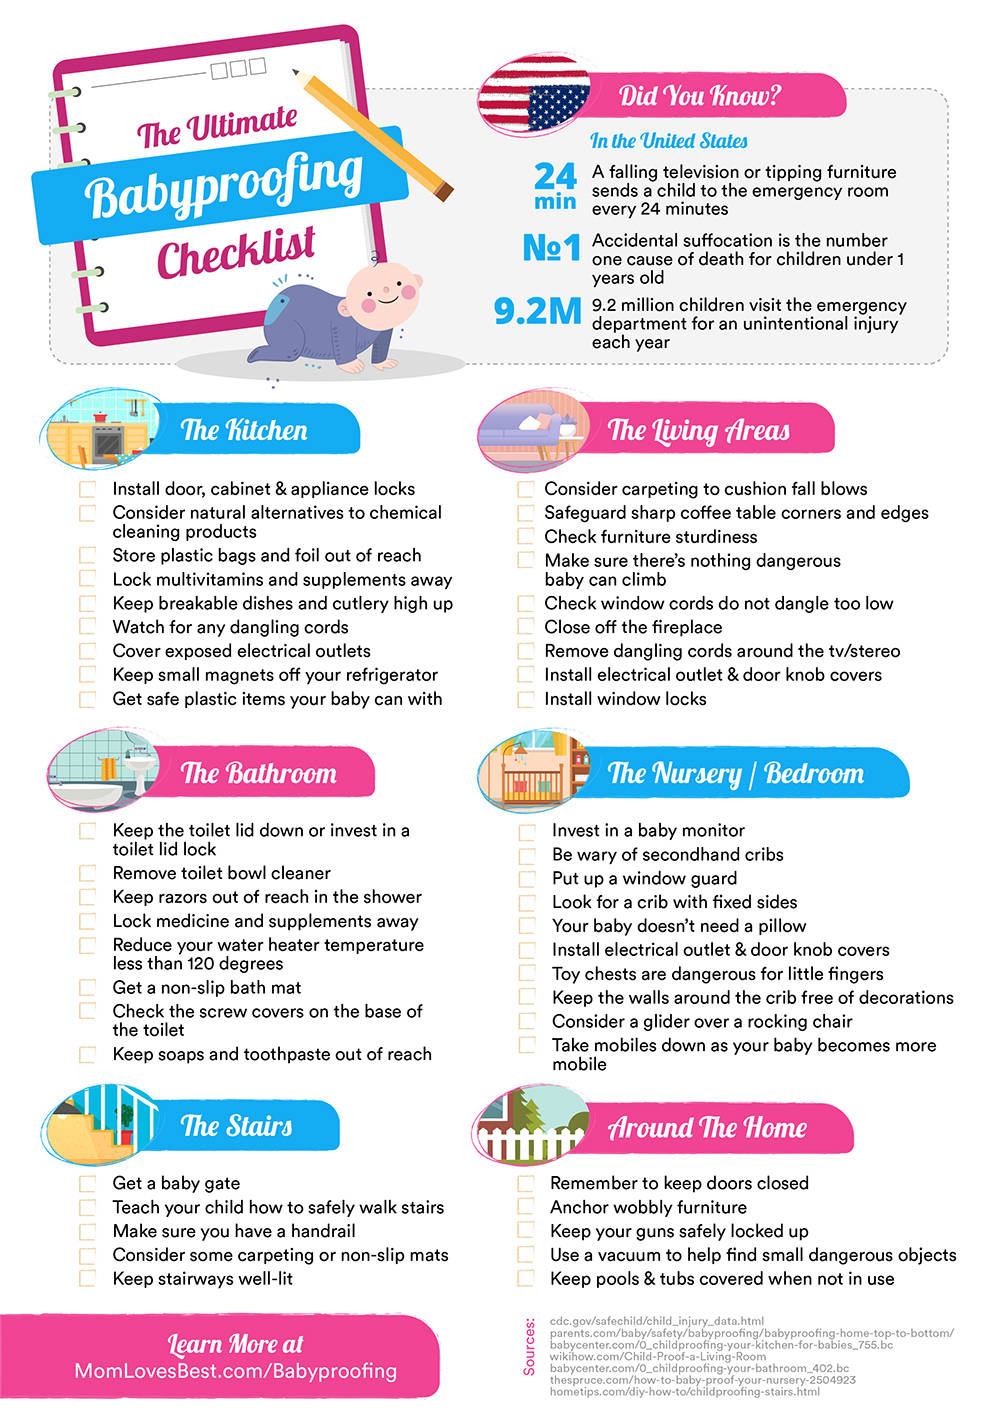 ultimate babyproofing checklist for parents